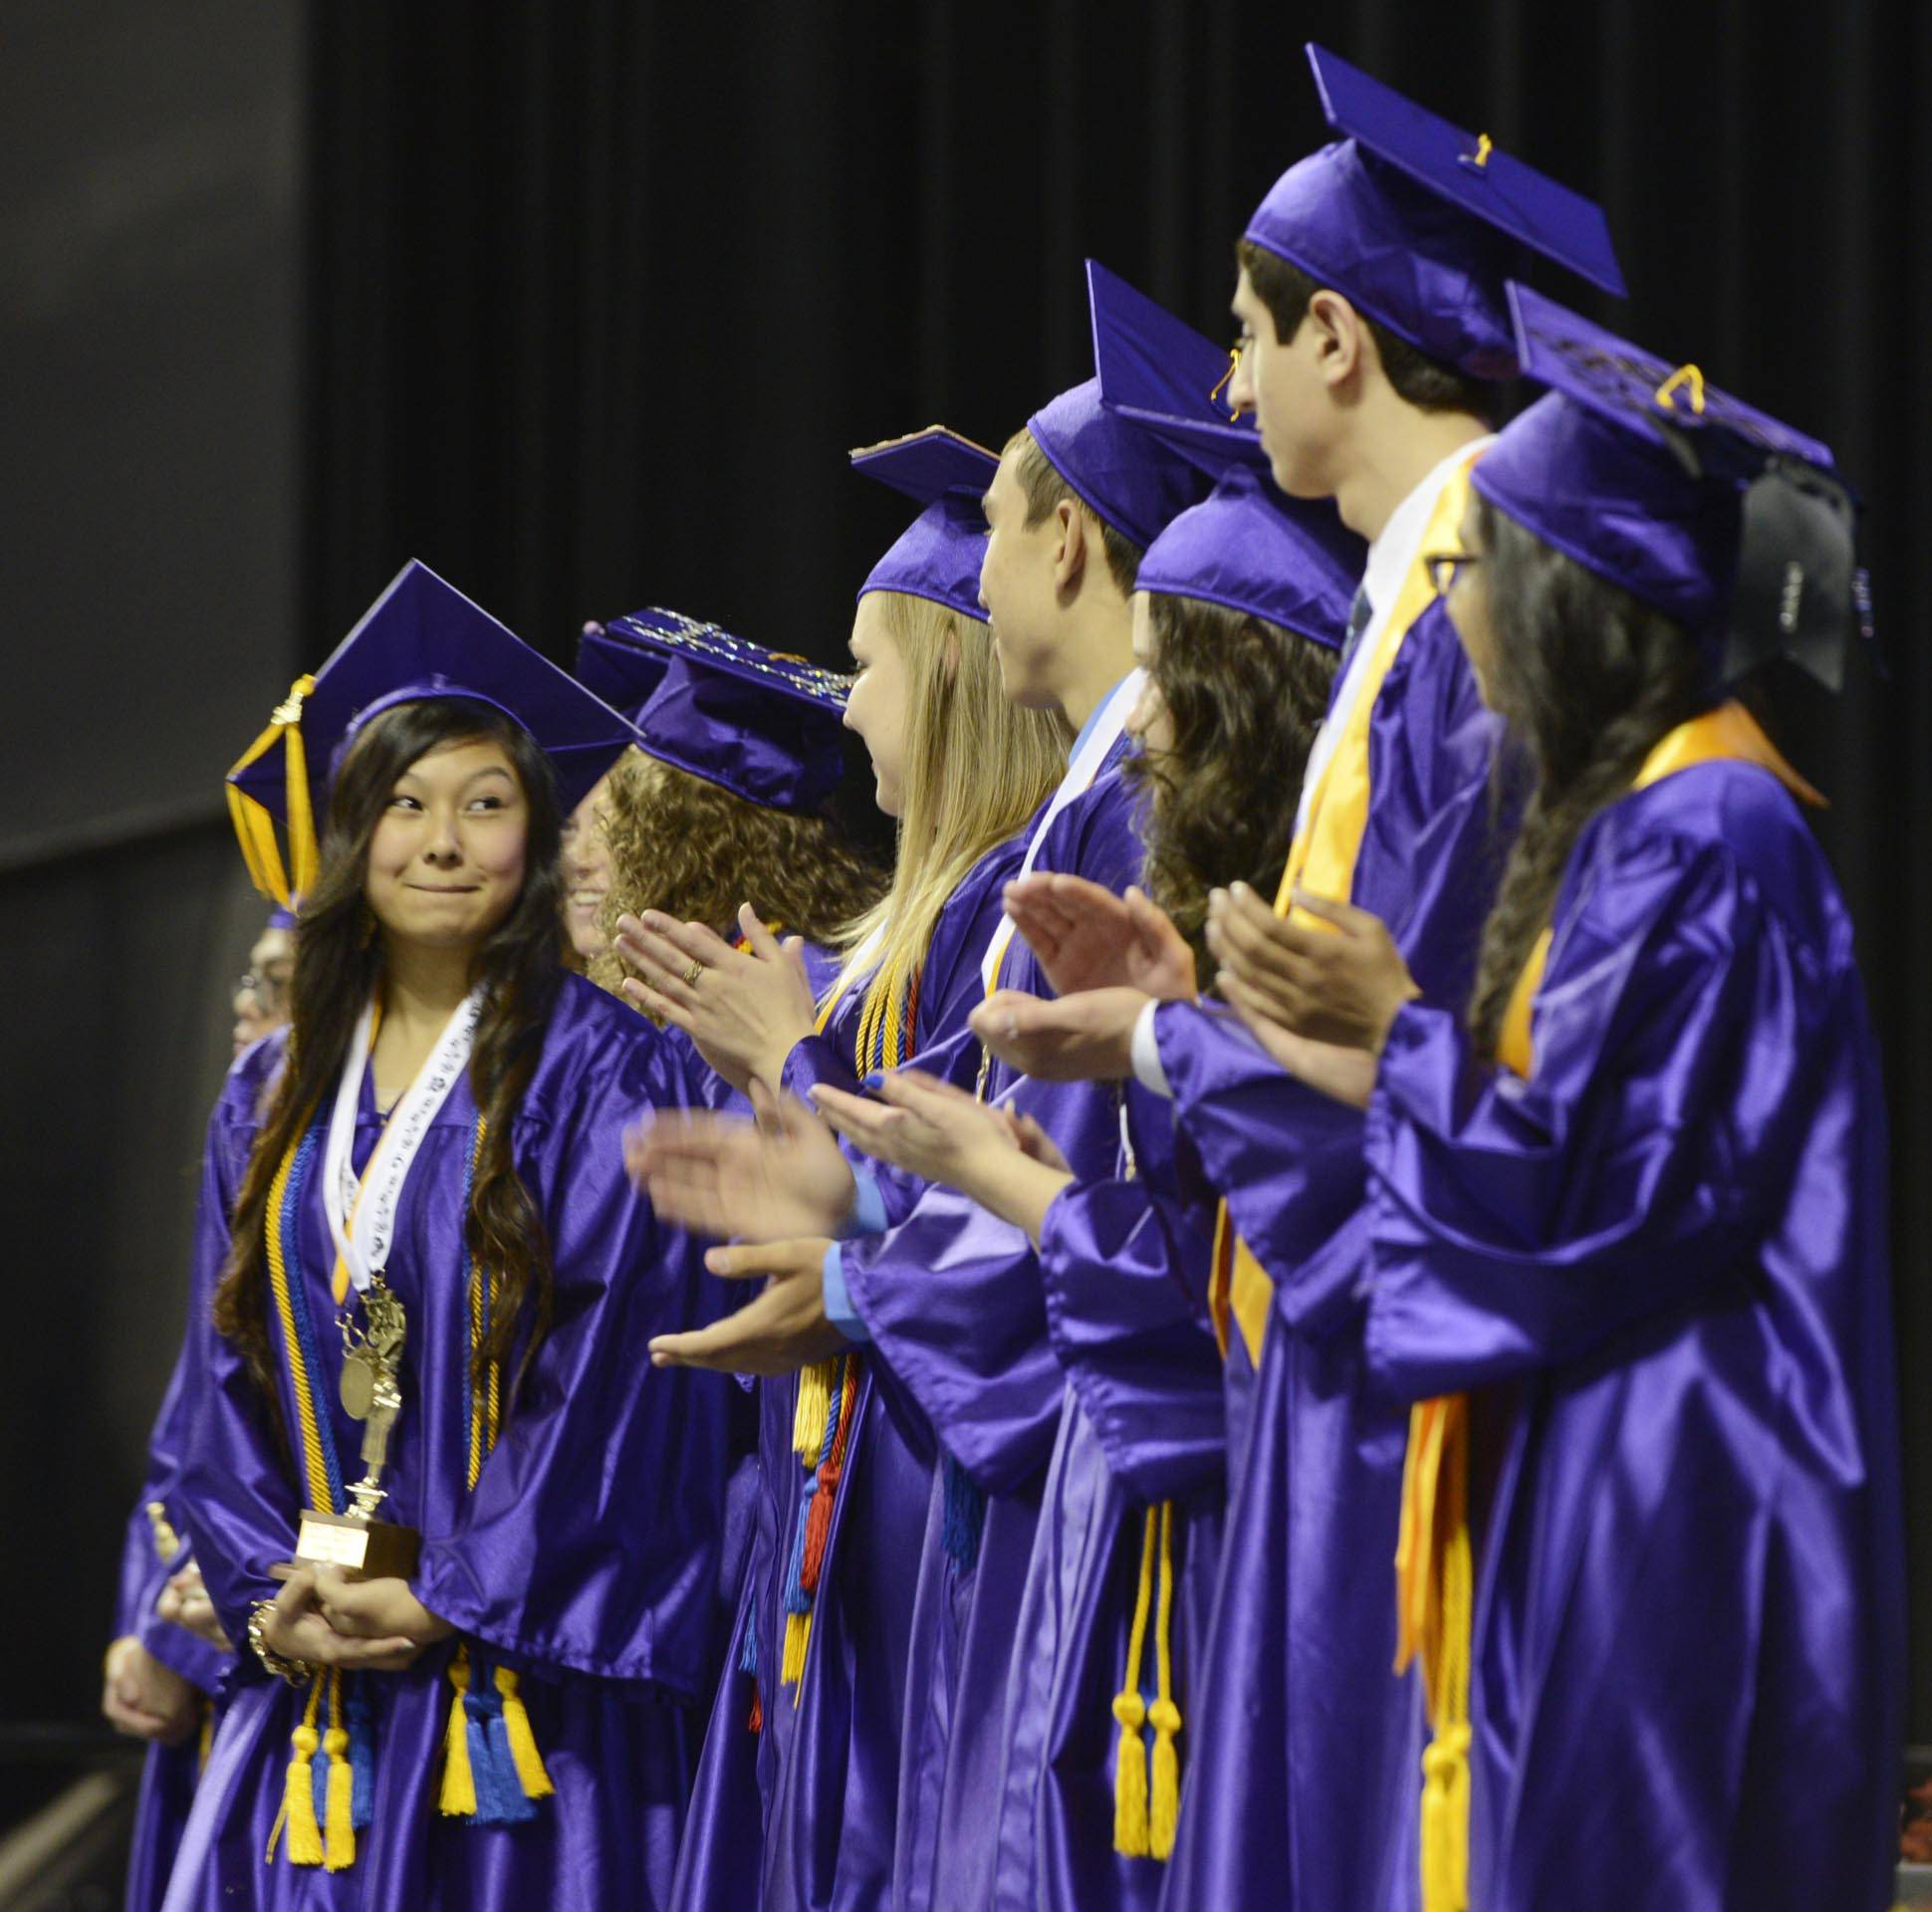 Honors Graduate Gabrielle Lopez looks at her classmates as a group of Honors students are introduced on stage Saturday at the Hampshire High School 2014 Commencement at the Sears Center in Hoffman Estates.